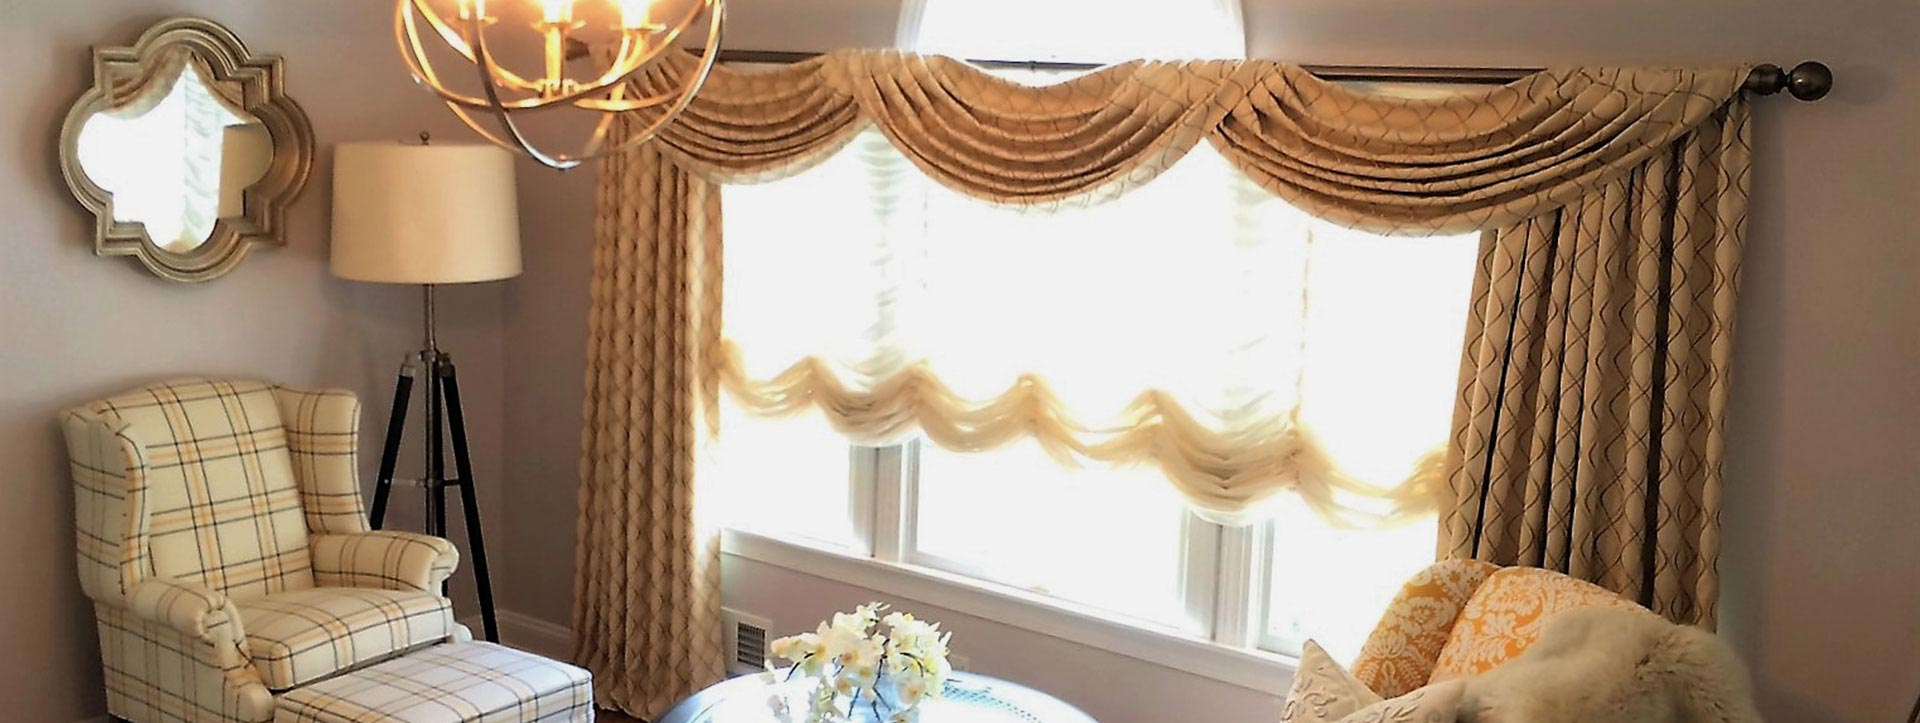 Window Treatments In Matawan Custom Drapery Installer Matawan Nj